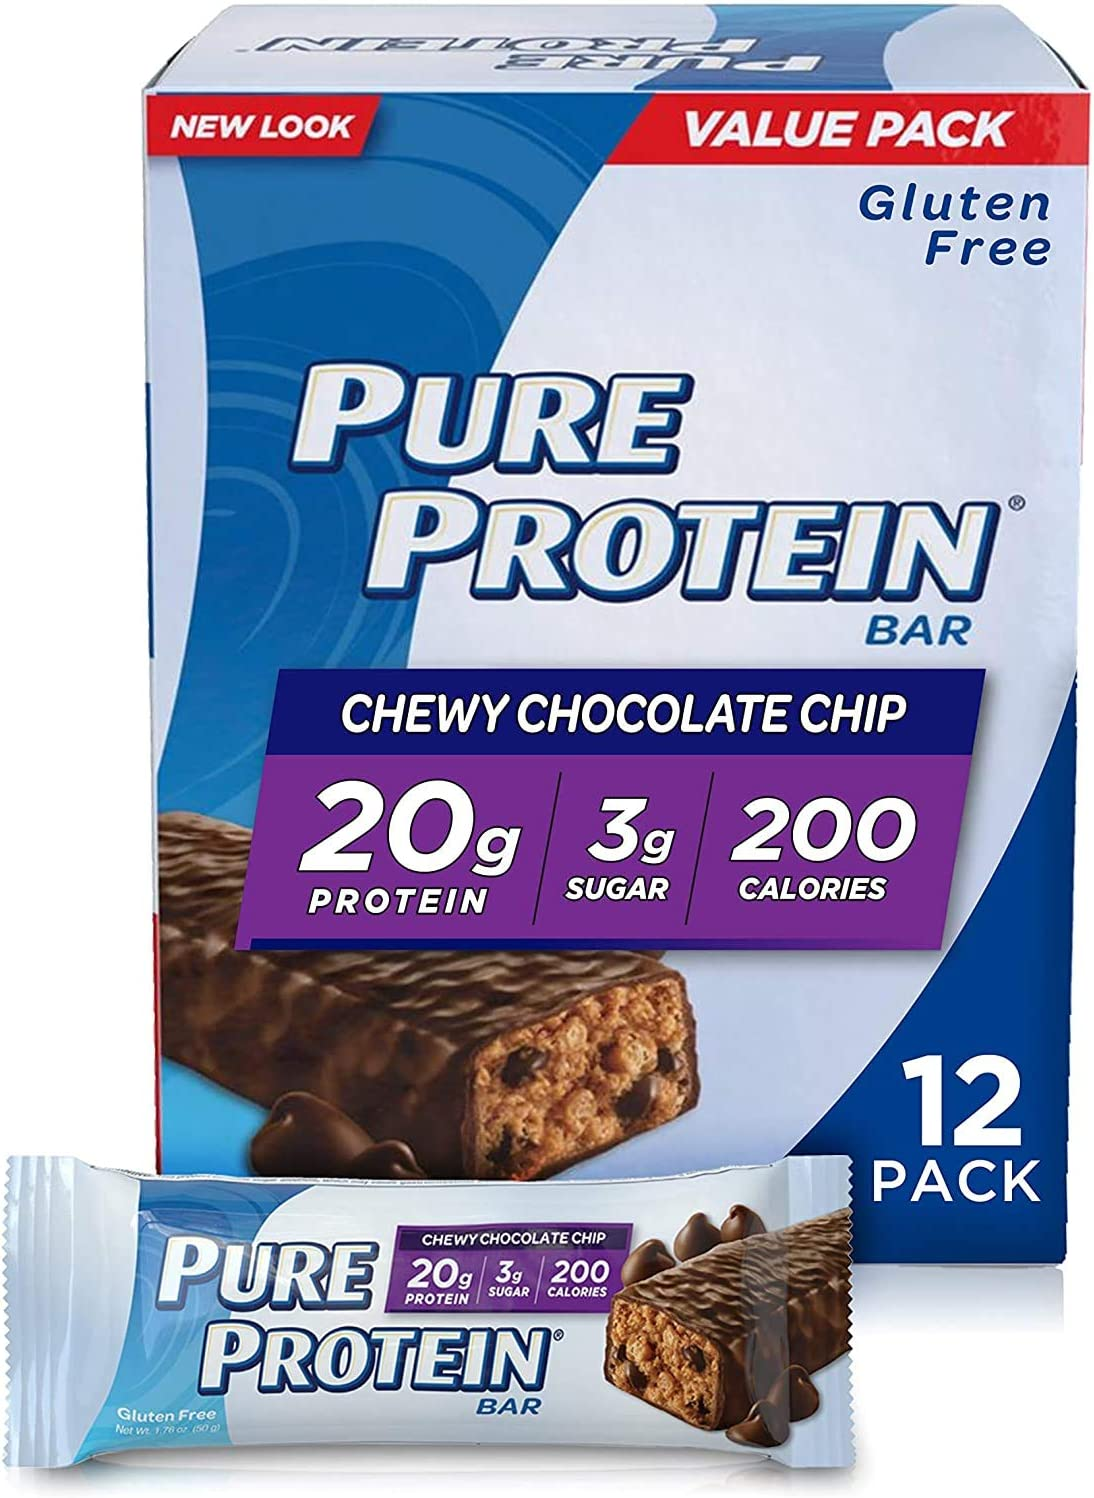 Pure Protein Bars, High Protein, Nutritious Snacks to Support Energy, Low Sugar, Gluten Free, Chewy Chocolate Chip, 1.76oz, 12 Pack